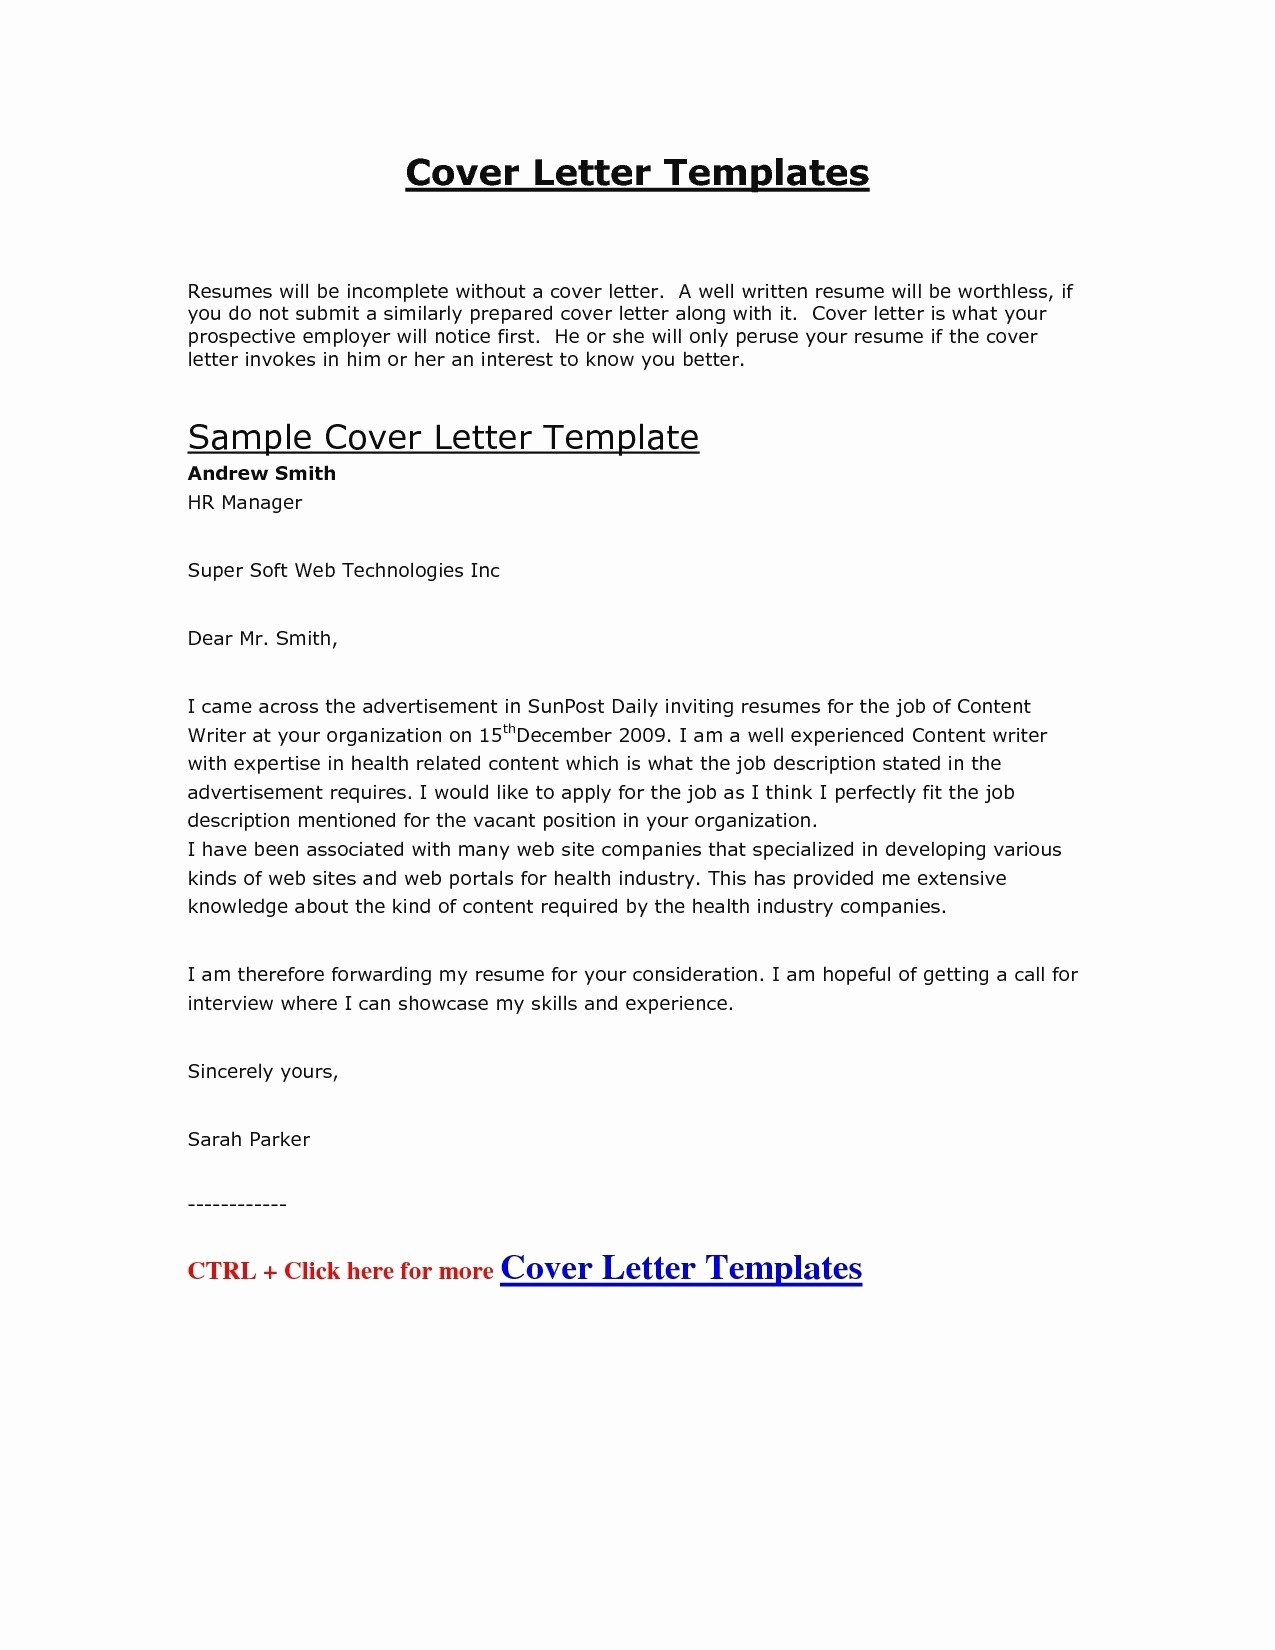 Hr Letter Template - A Good Cover Letter Examples Cover Letter Sample Free and Resume